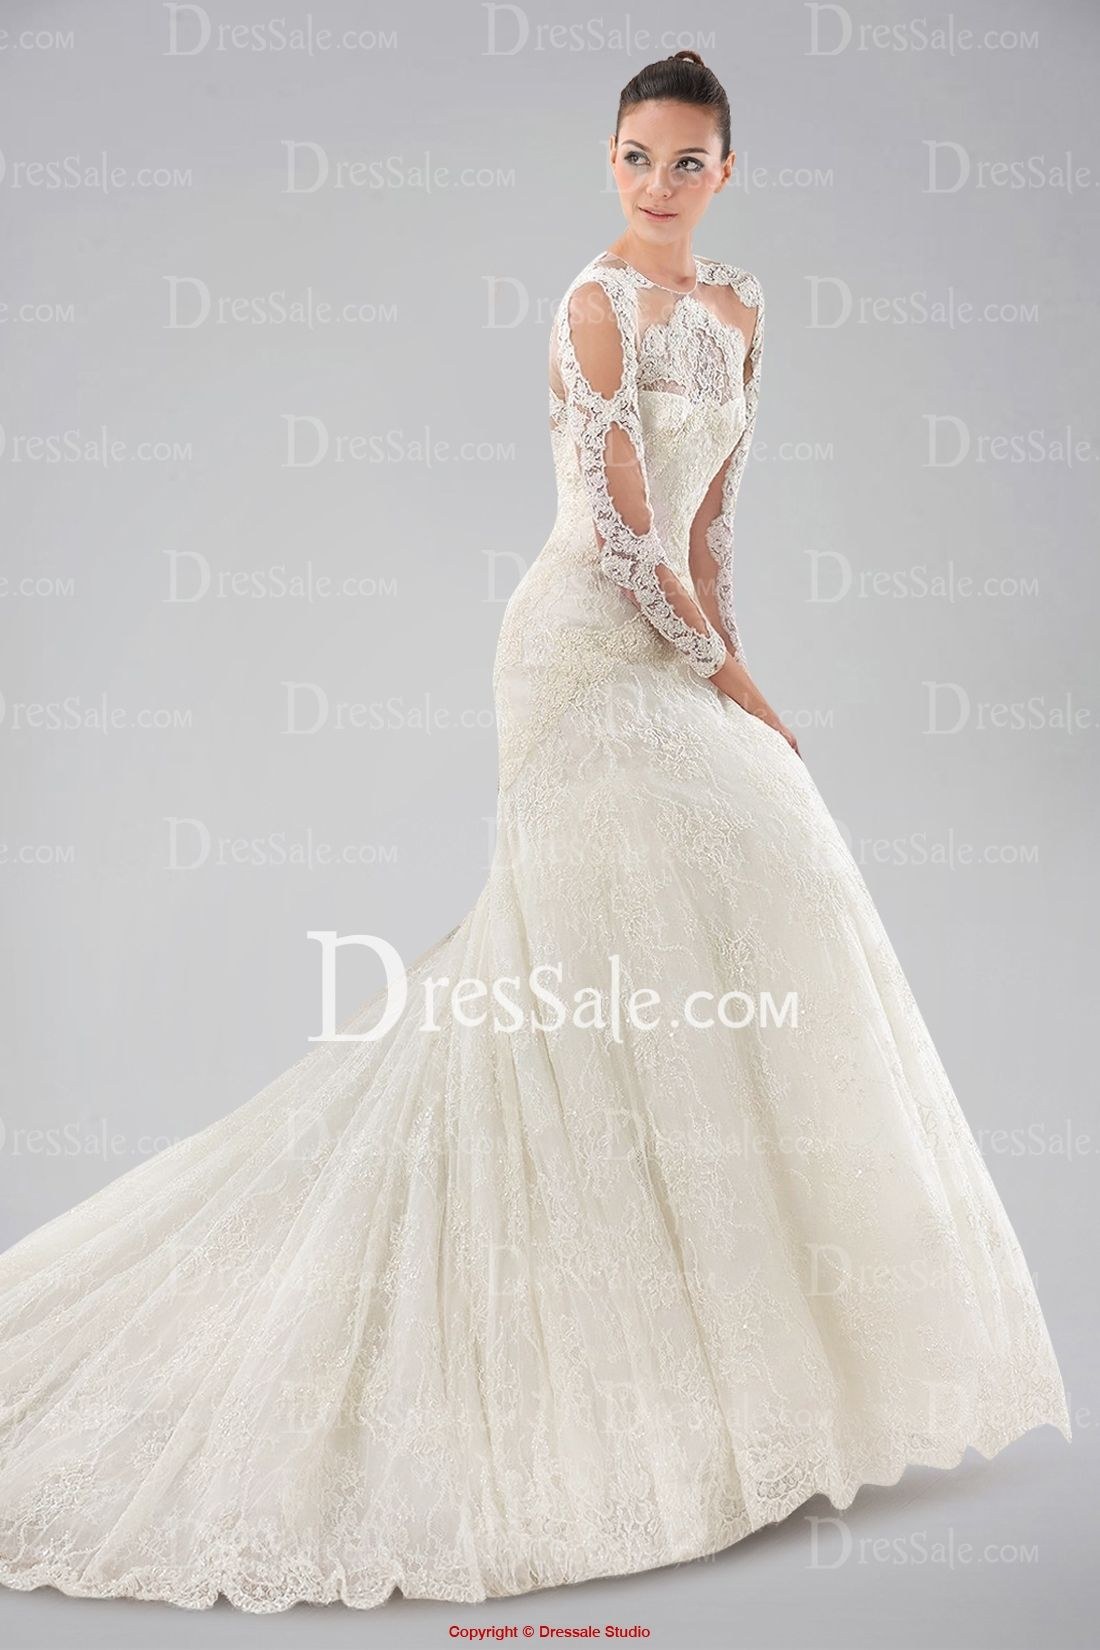 A To Die For Queenly Long Sleeve Wedding Gown with Lace Overlay and ...